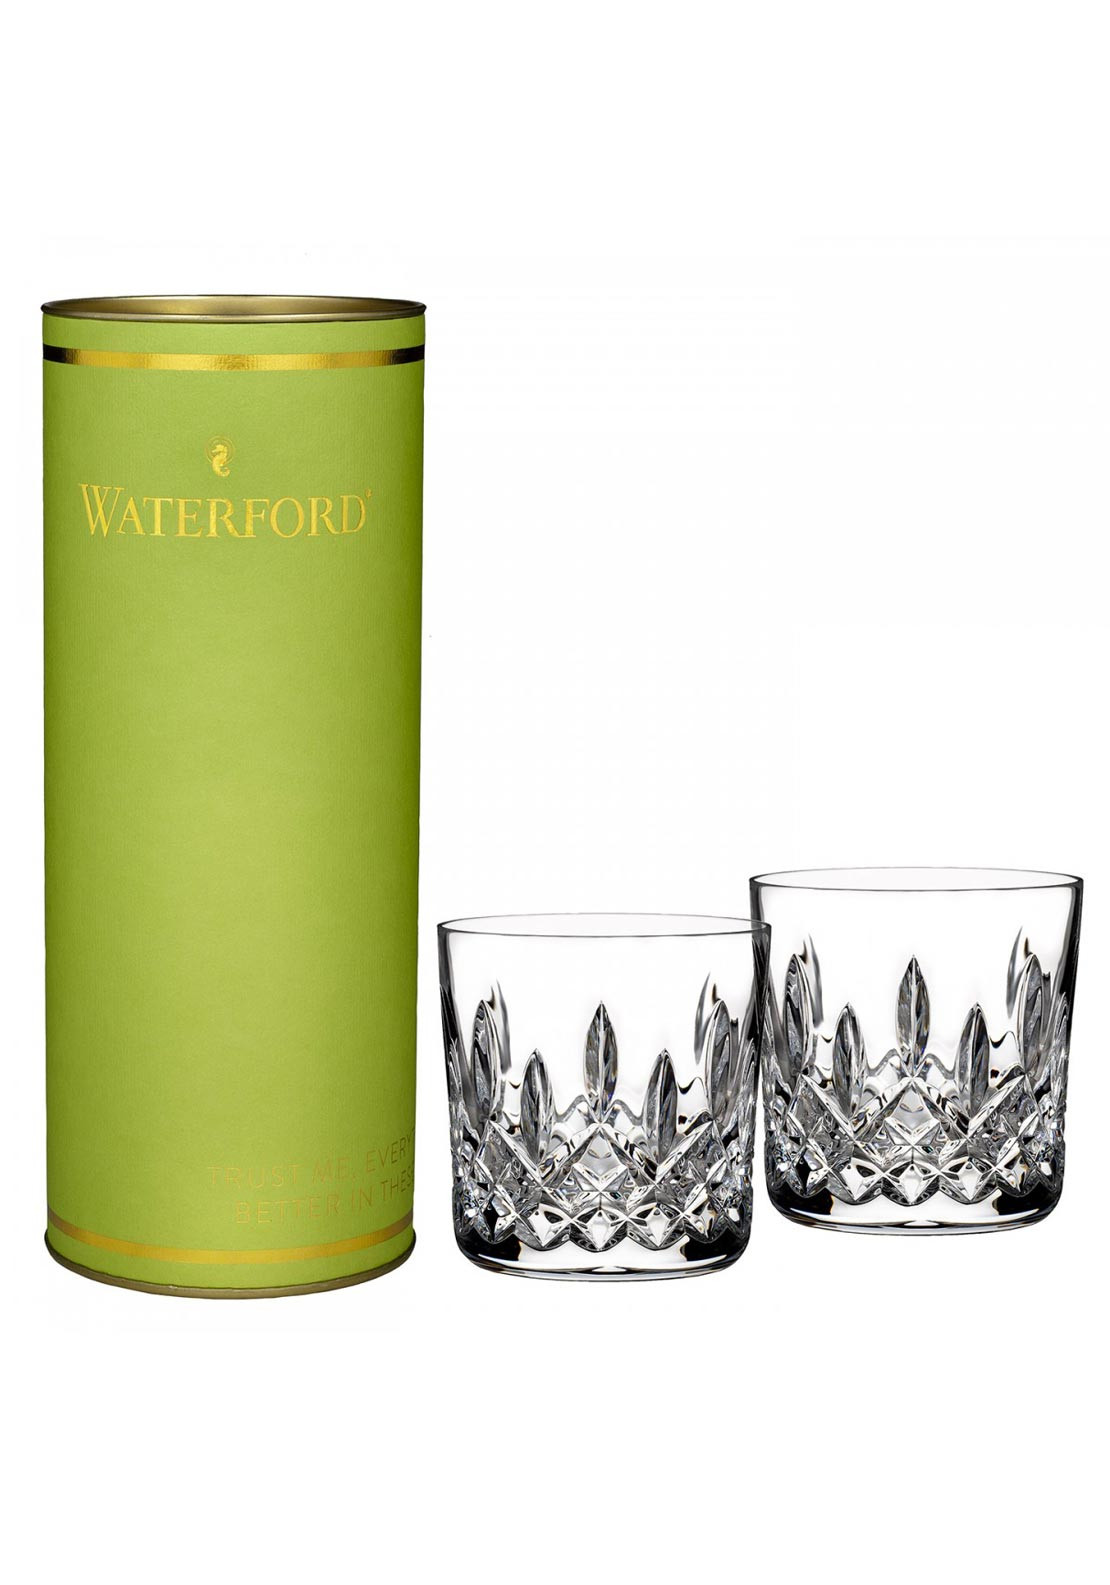 Waterford Crystal Lismore 9oz Lismore Tumbler, Set of 2